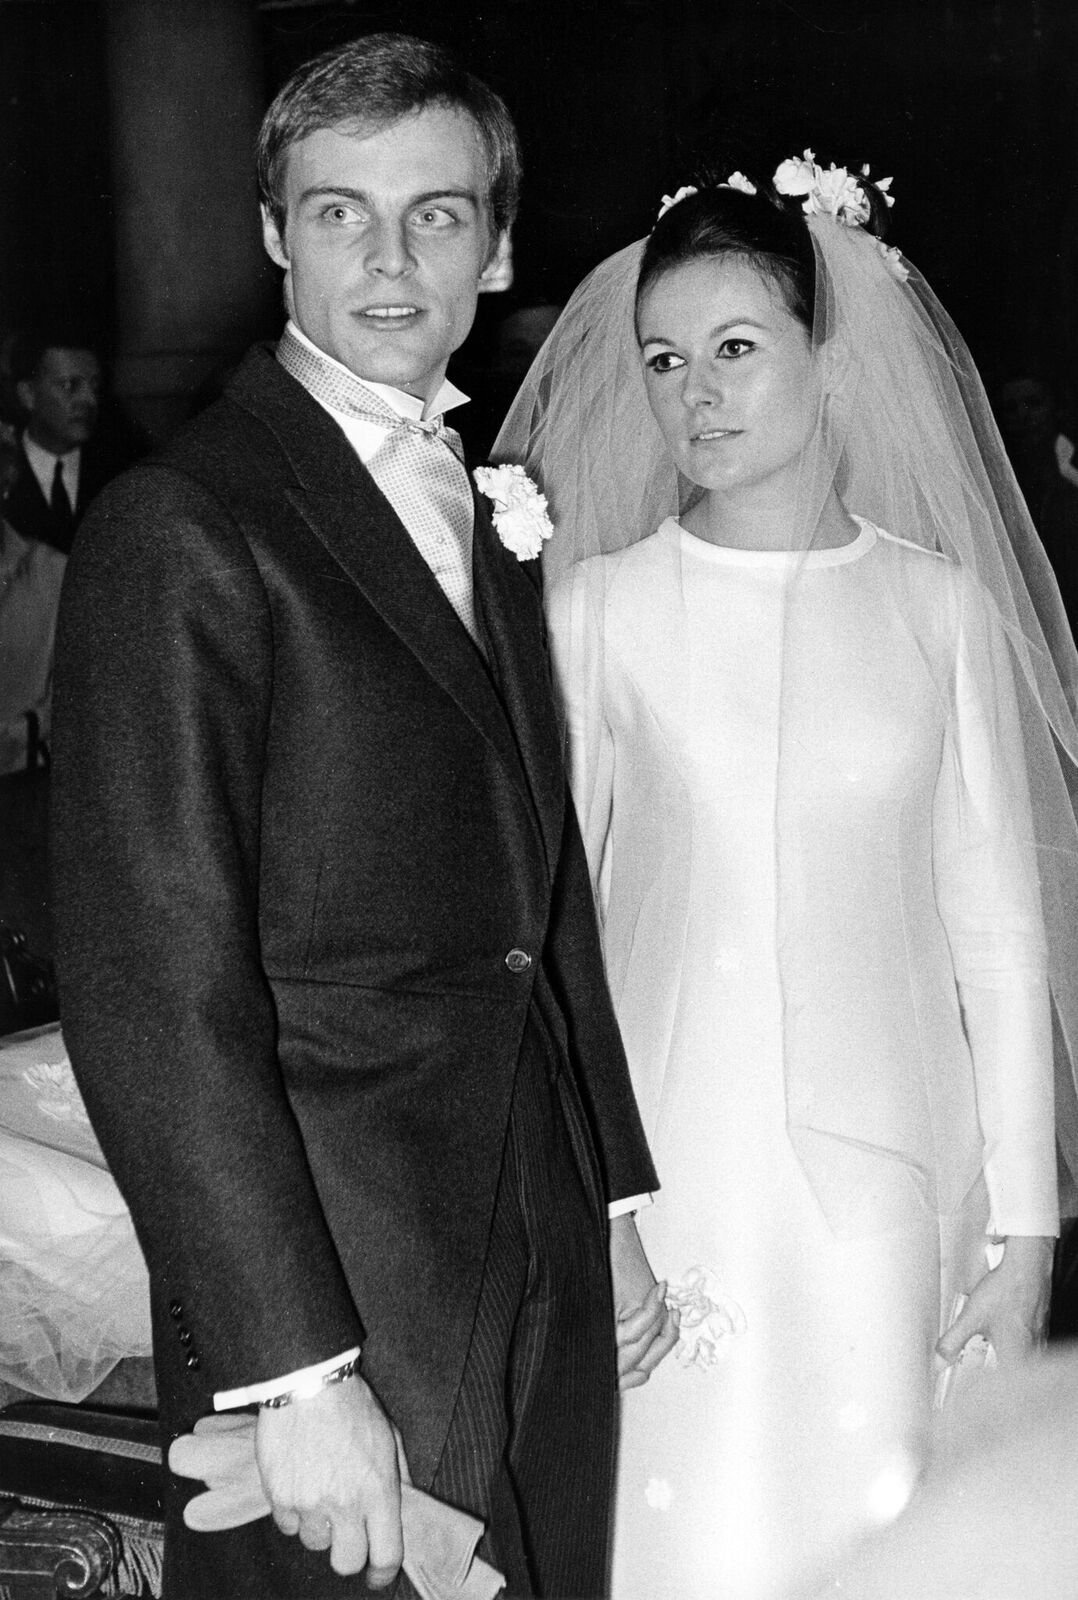 Mike Marshall et sa femme Catherine lors de leur mariage à l'Eglise Saint-Honoré d'Eylau à Paris le 26 avril 1966, France. | Photo : Getty Images